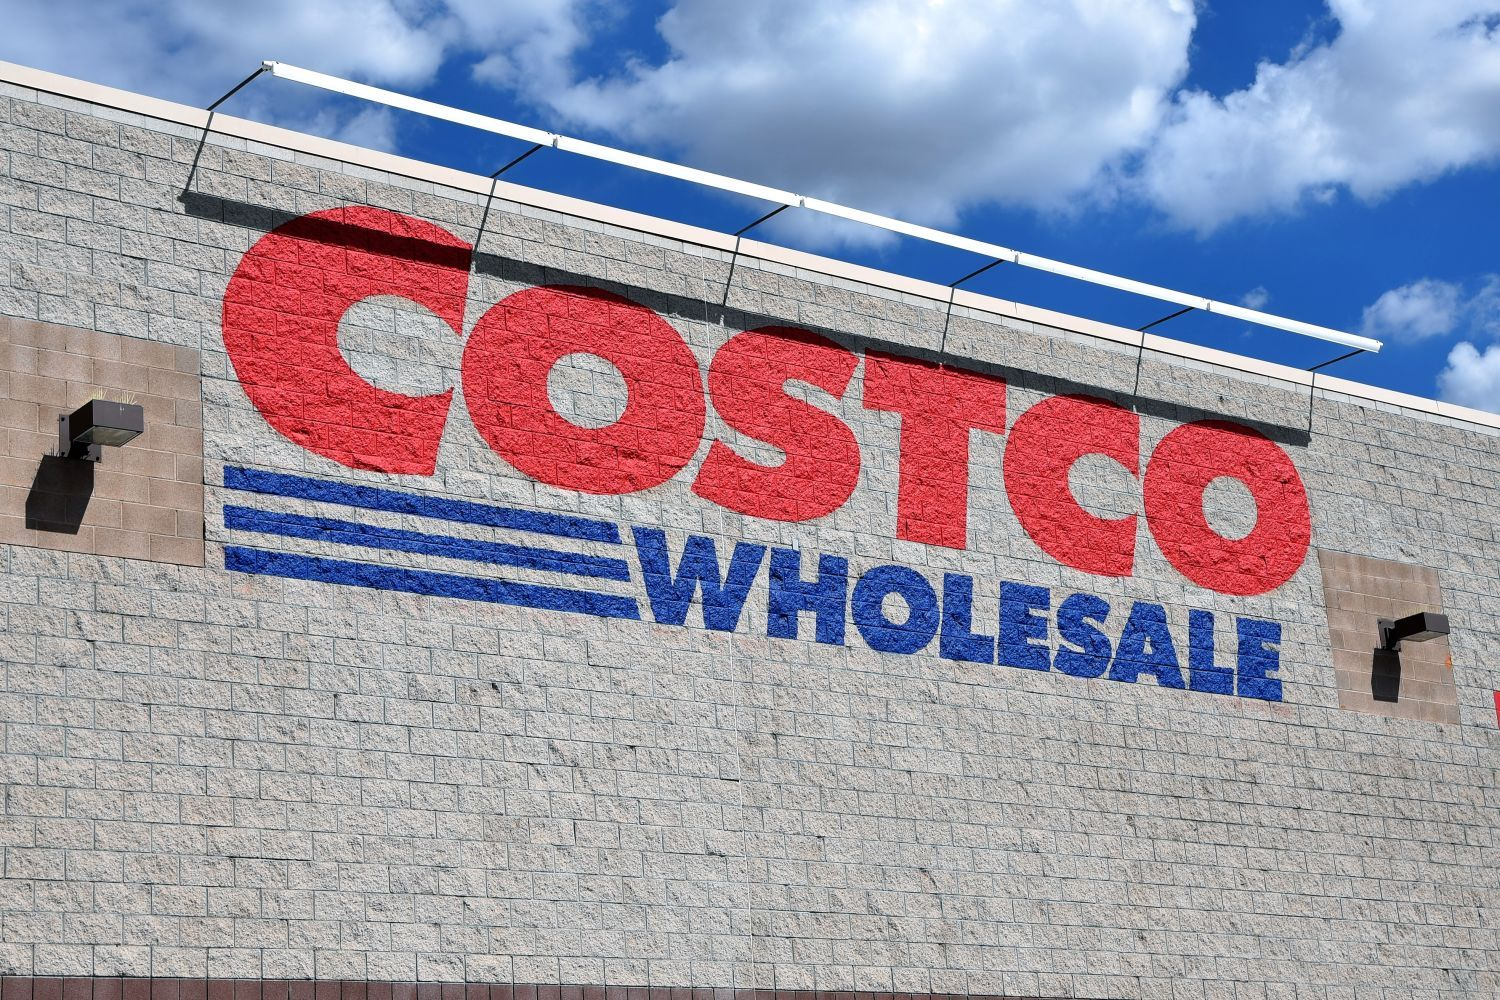 10 Things This Top Chef Masters Champ Always Buys At Costco Costco Top Chef Costco Shopping